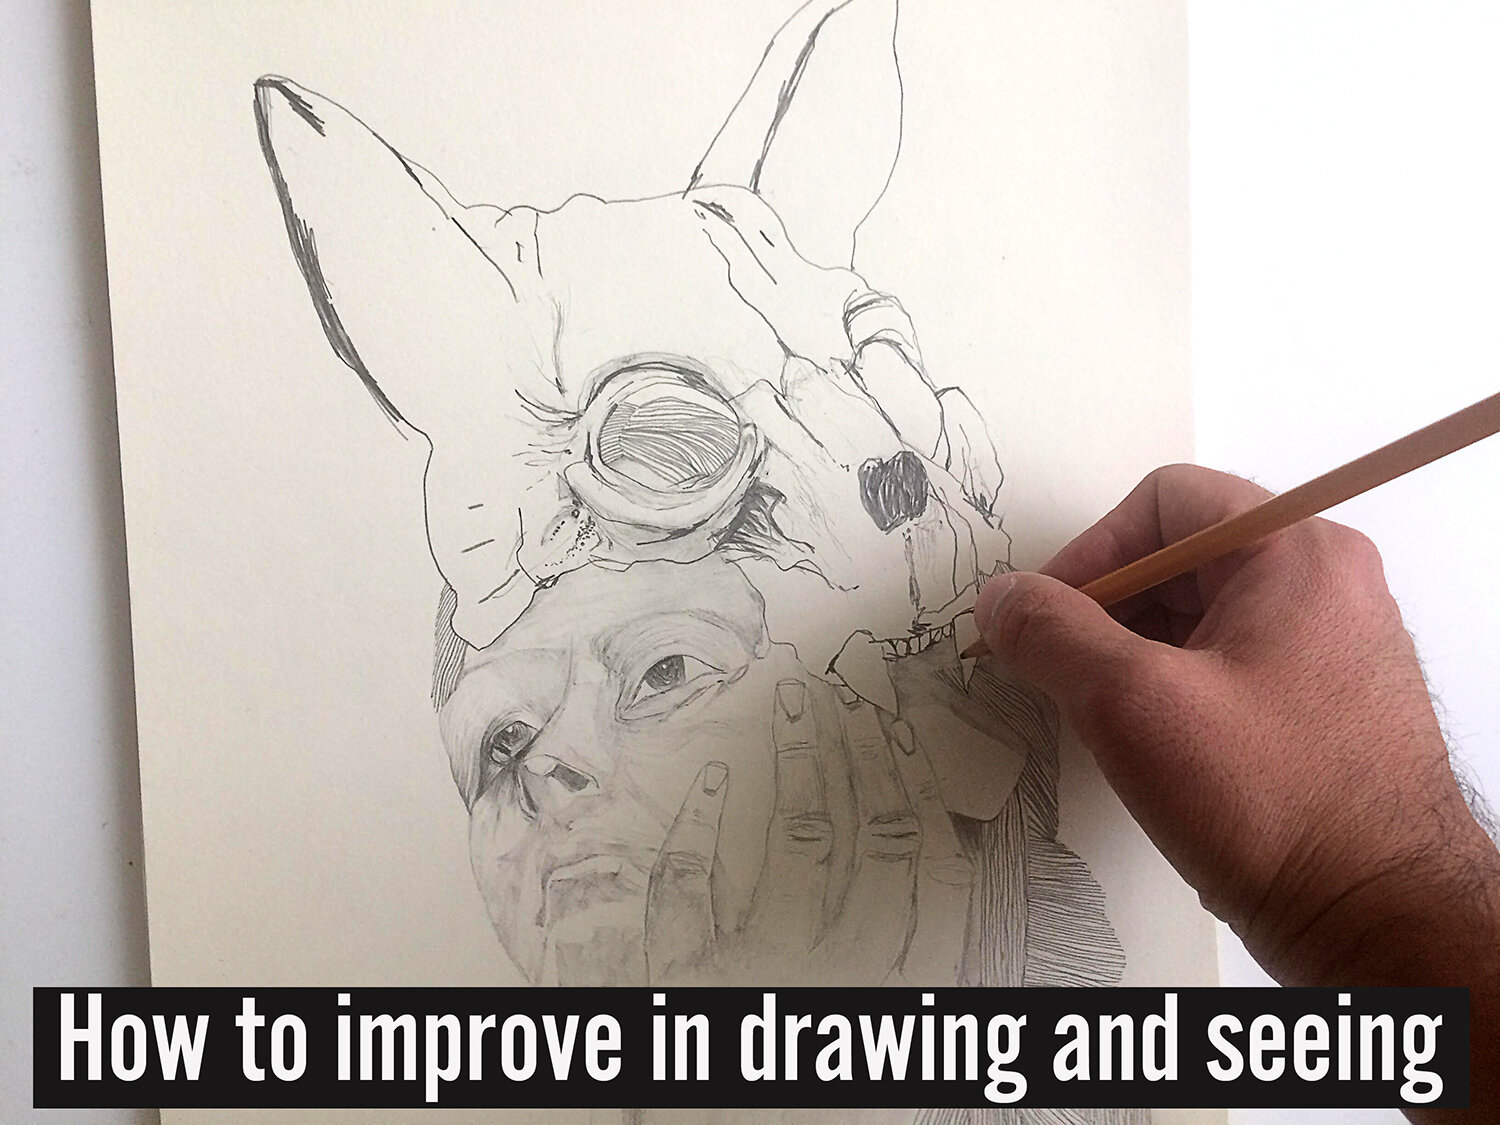 How to improve in drawing and seeing by ali tareen oh.jpg